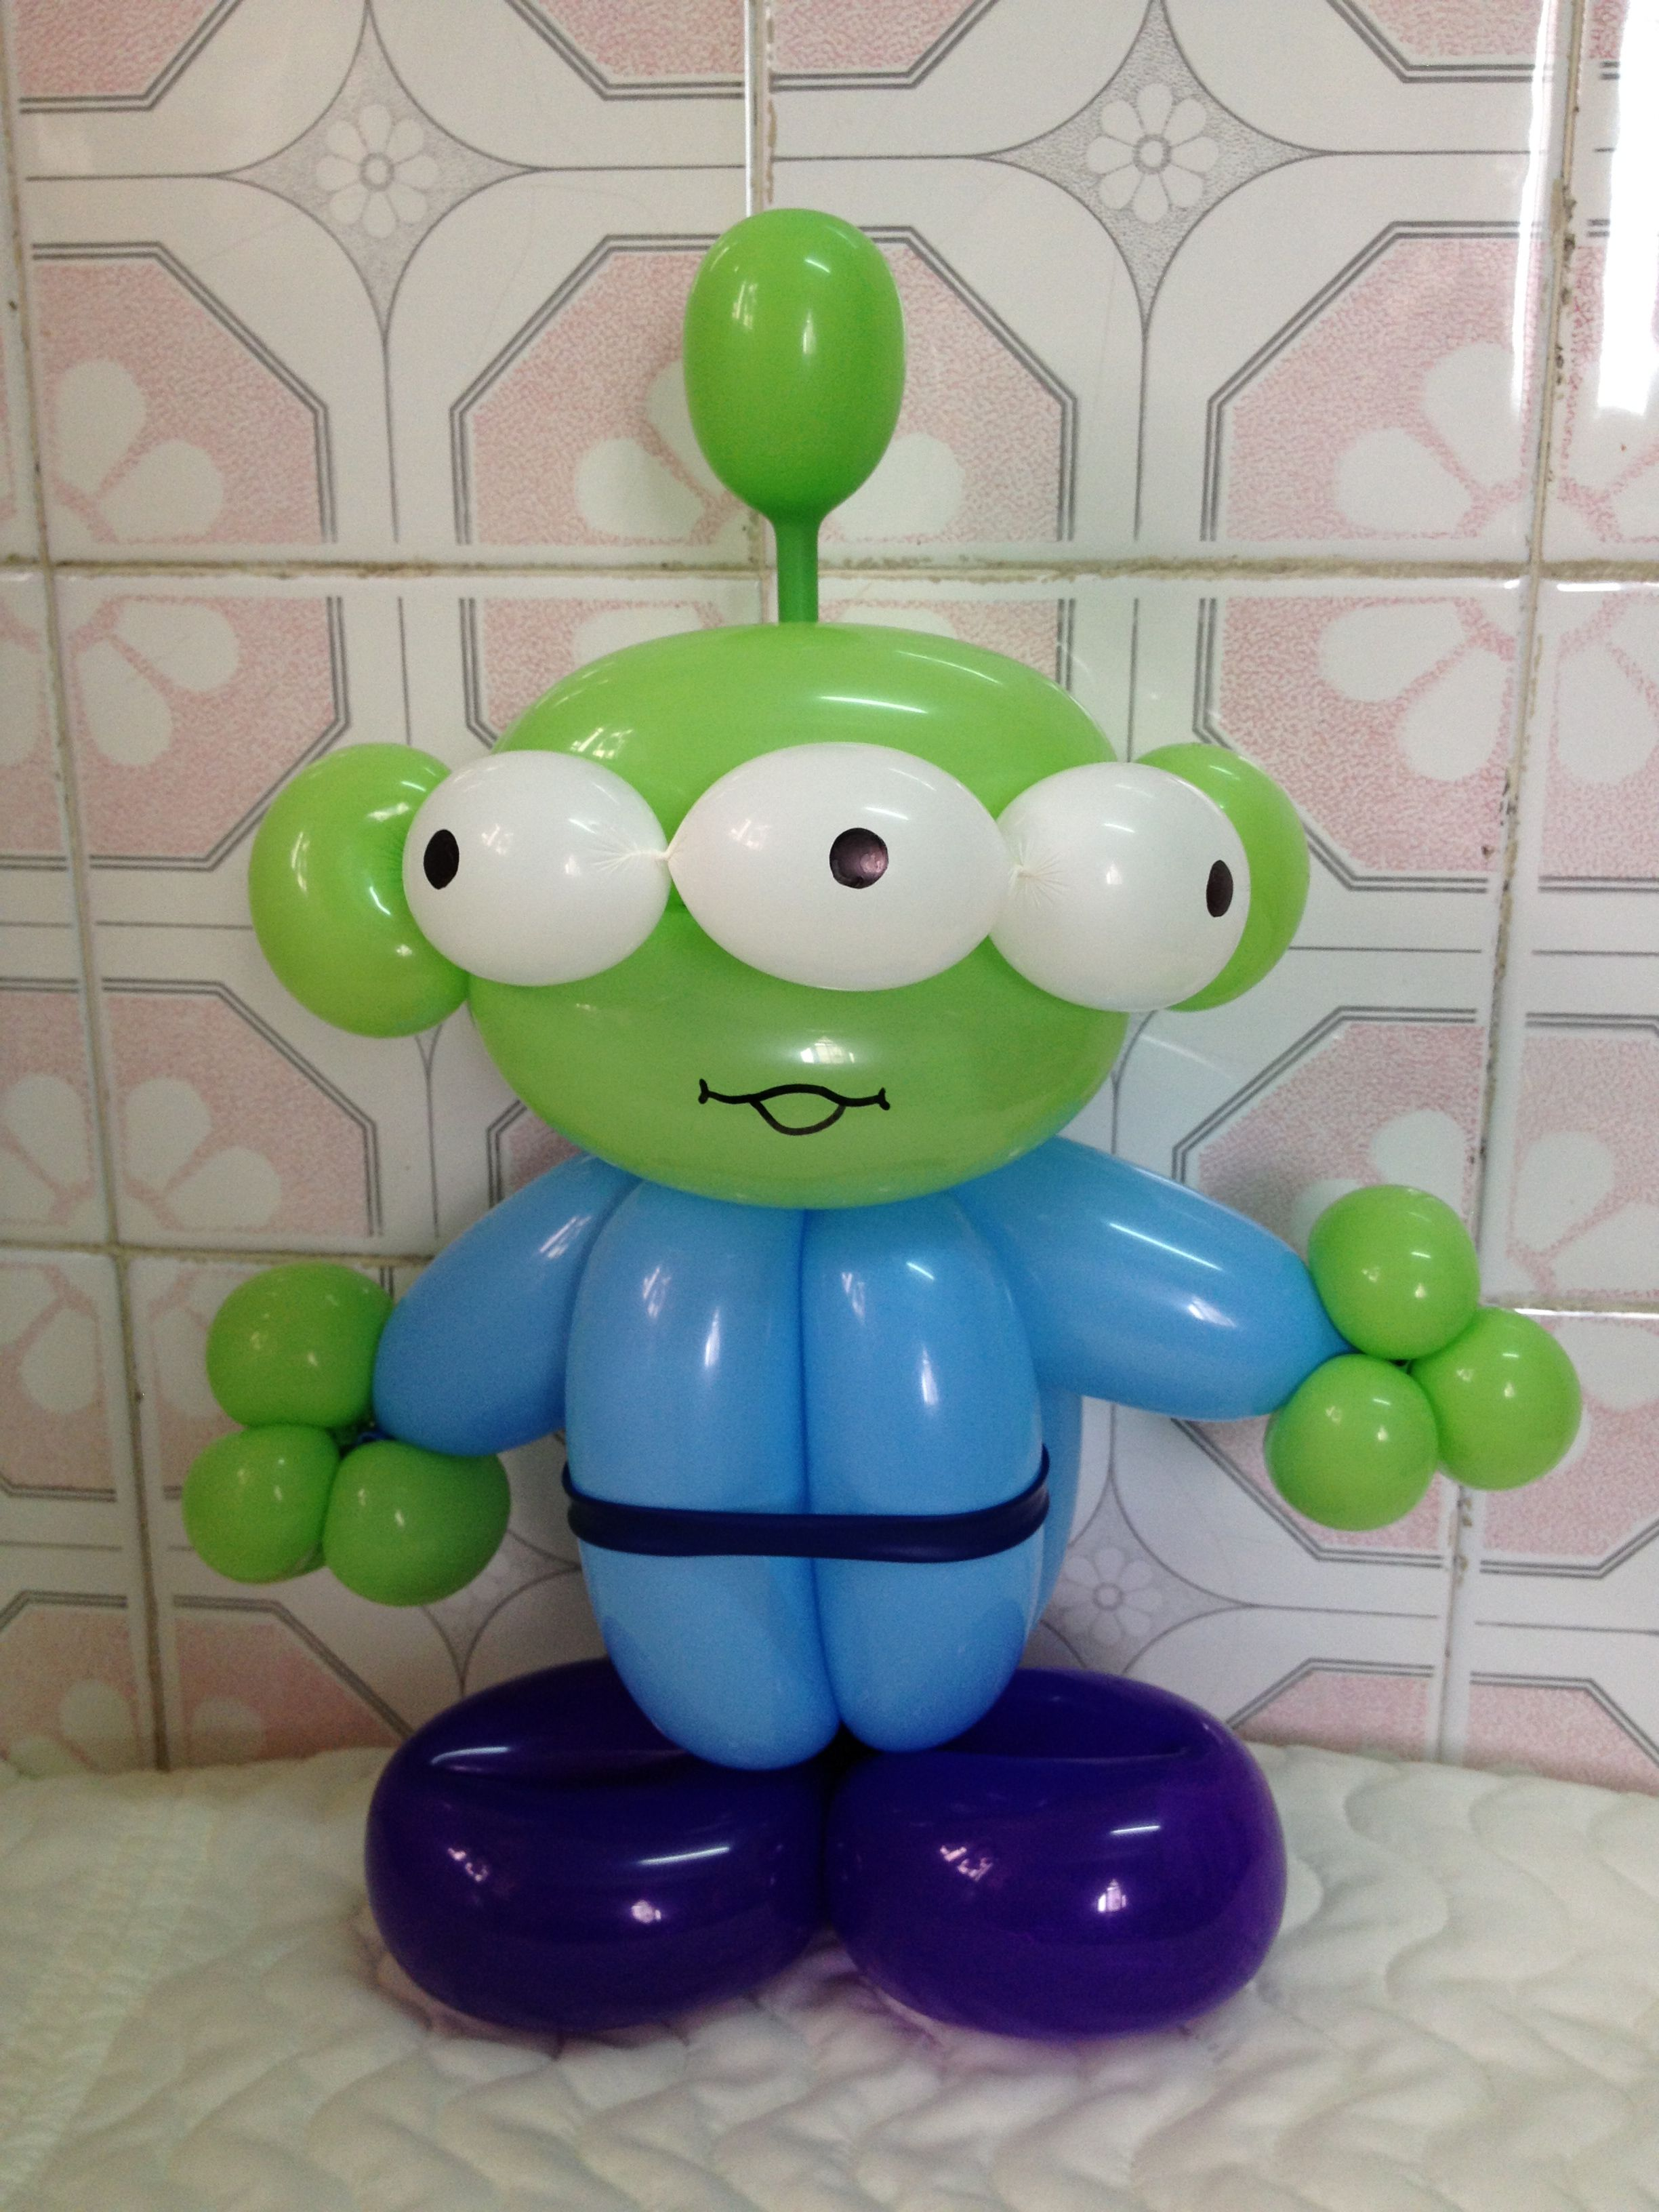 Balloon Little Green Man